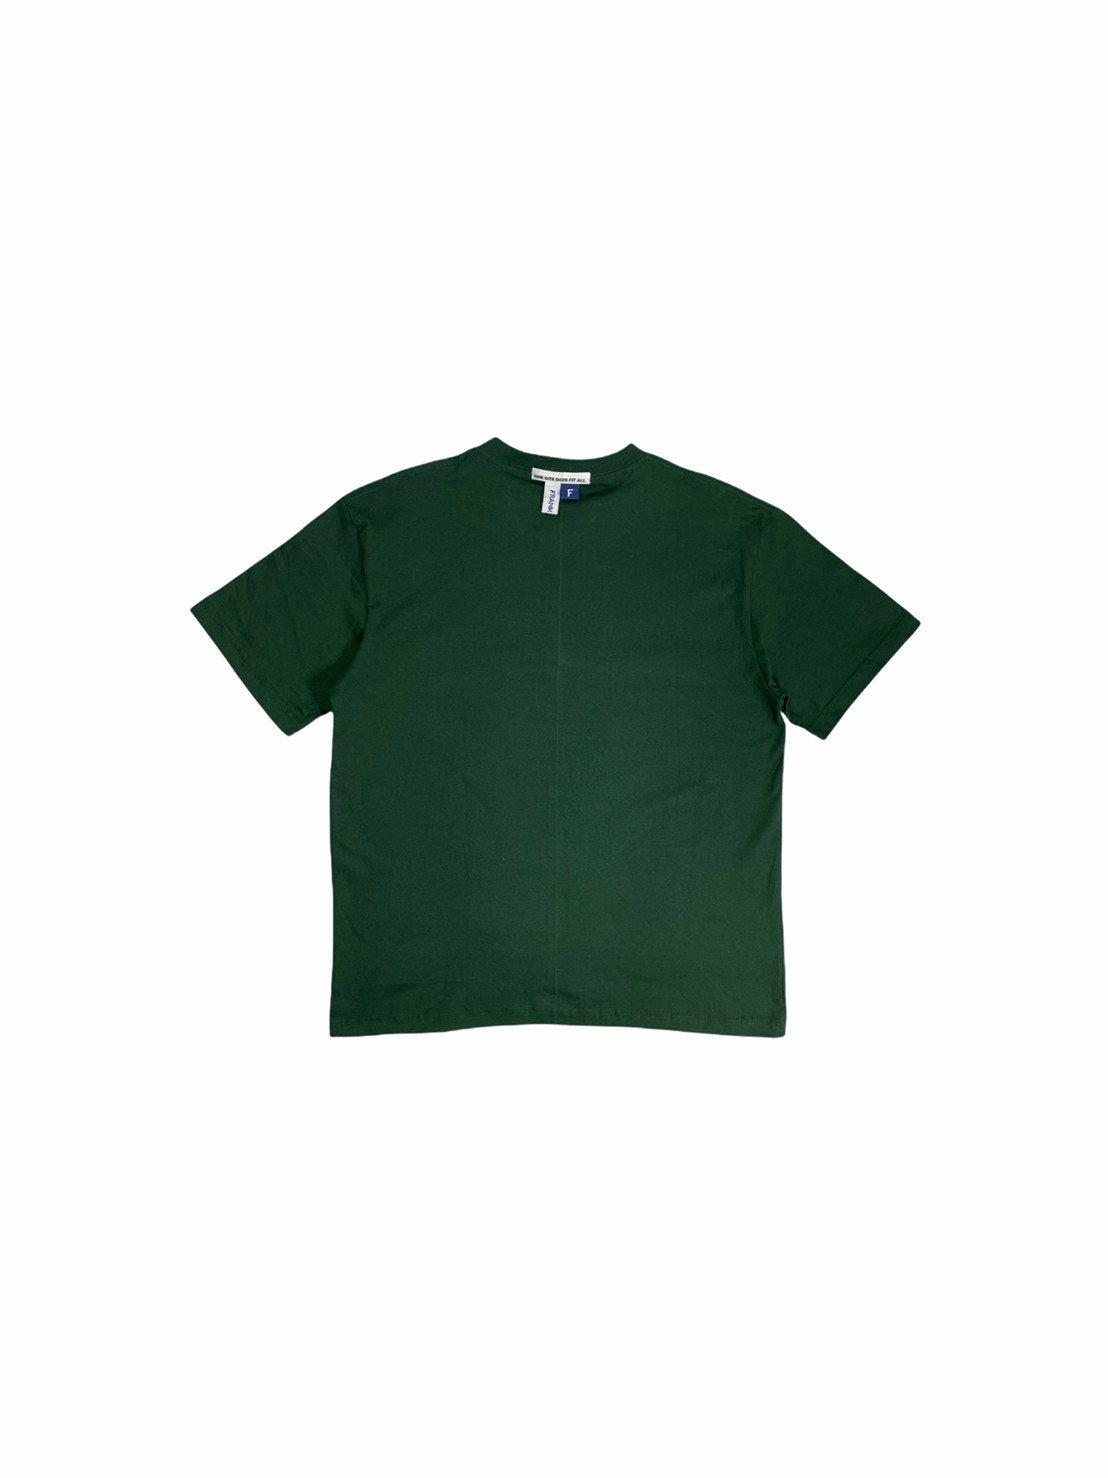 FRANK! Have a FRANK day Tee